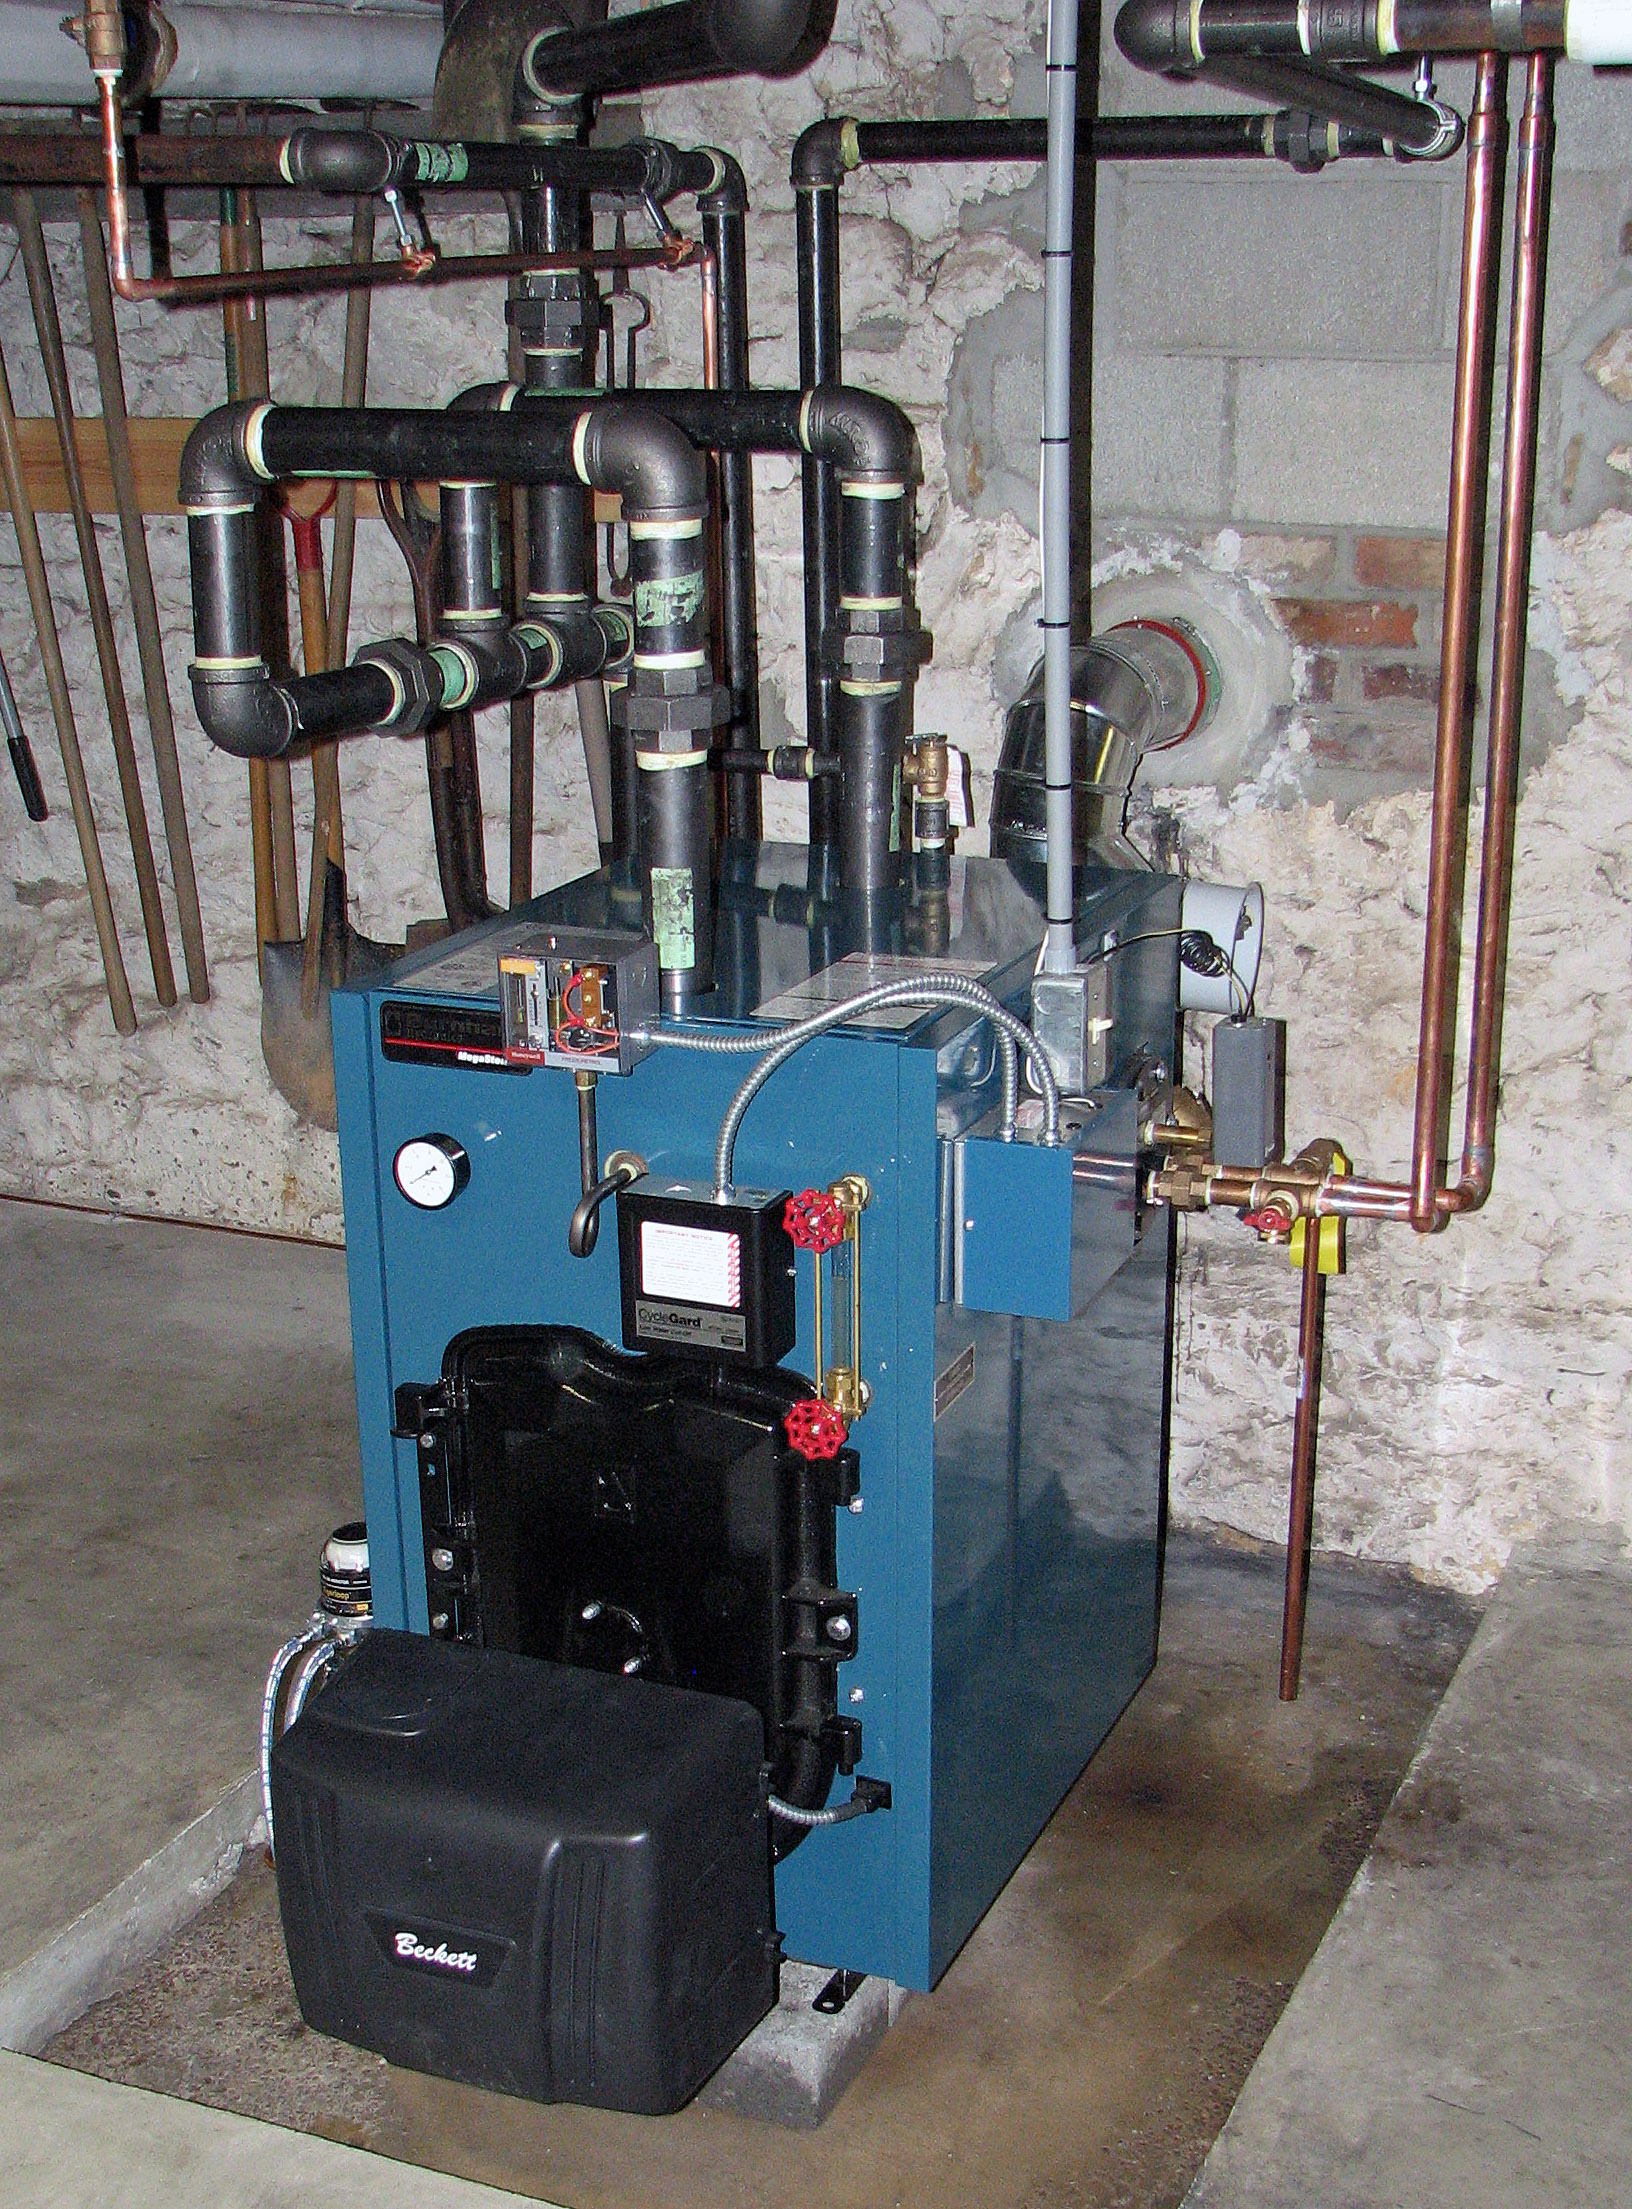 Oil Boiler Smoking Residential Wiring Diagram